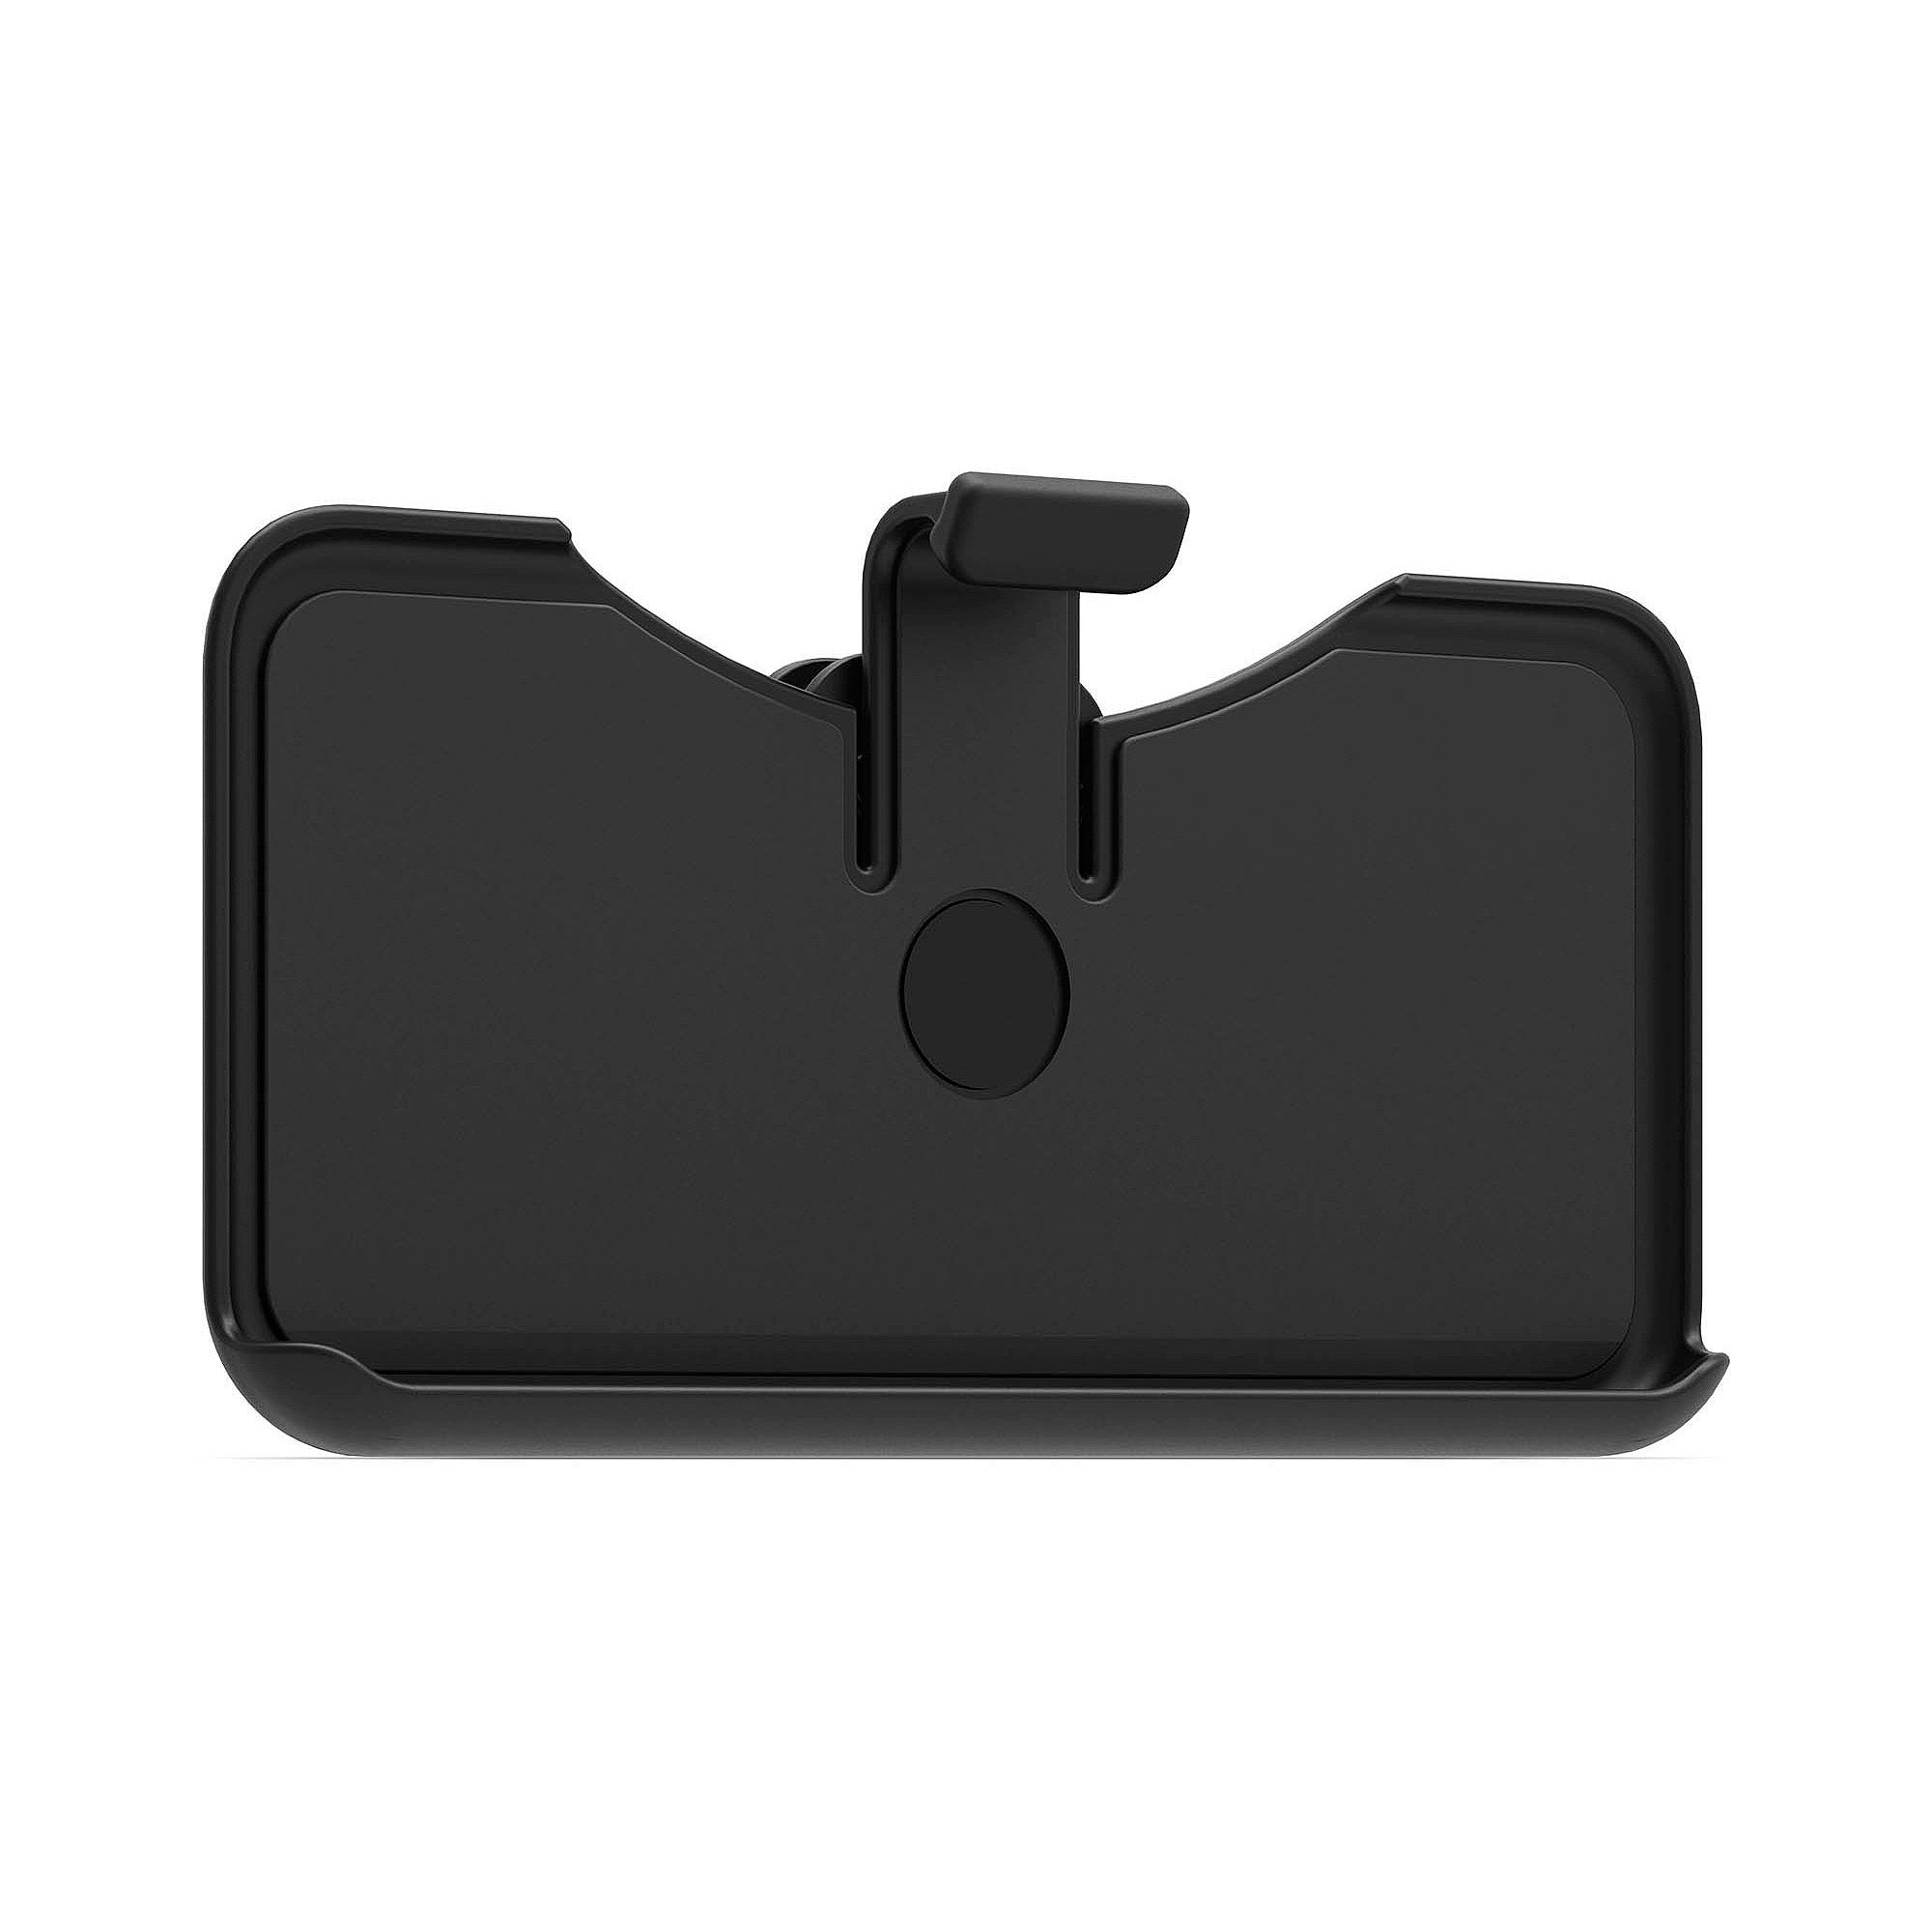 new concept 19a2c 5df46 mophie Belt Clip for mophie Juice Pack for iPhone 6 Plus at ...